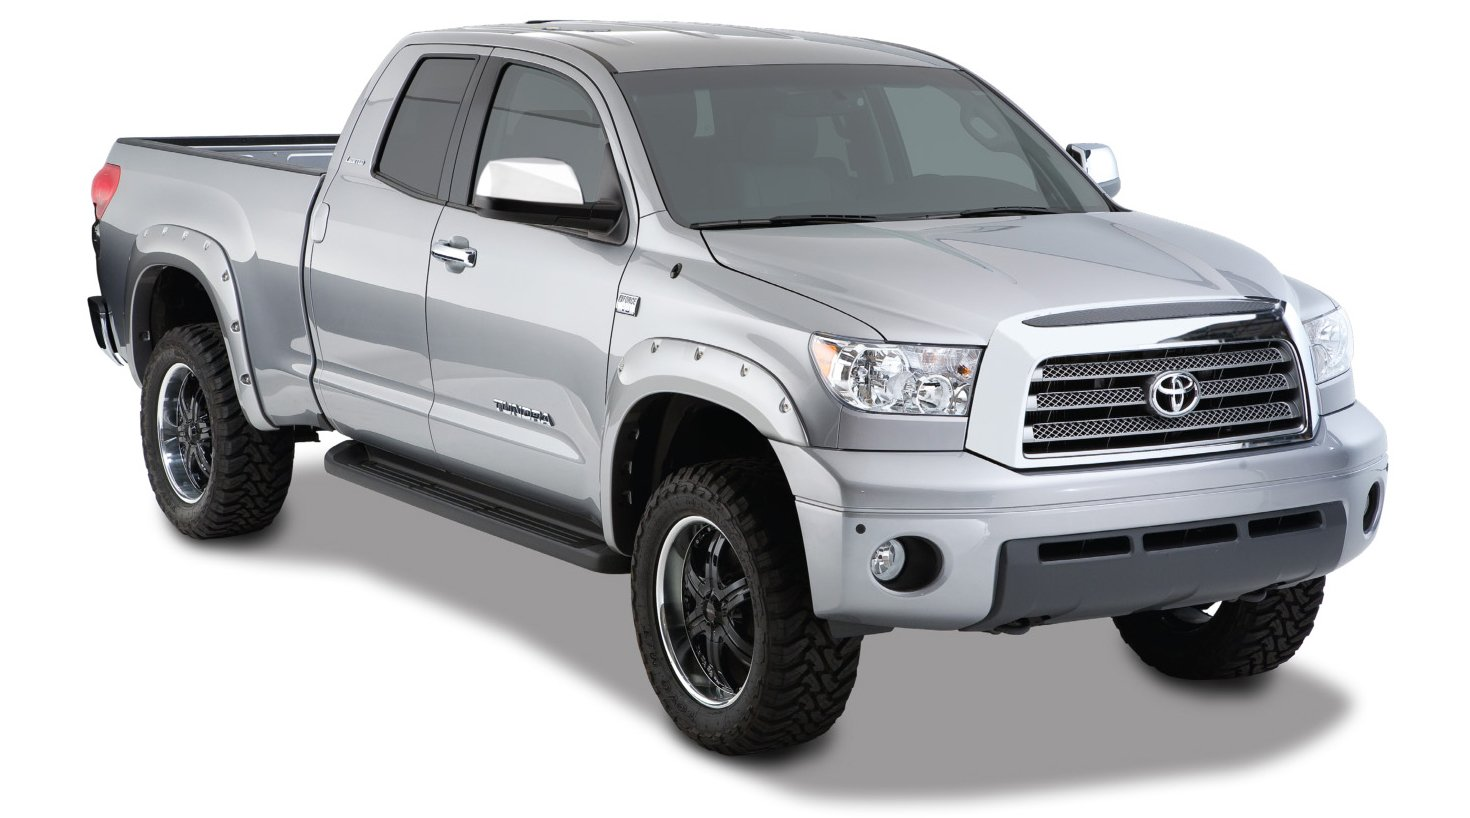 shop accessories desert bumper designs add tundra front m lite addictive toyota